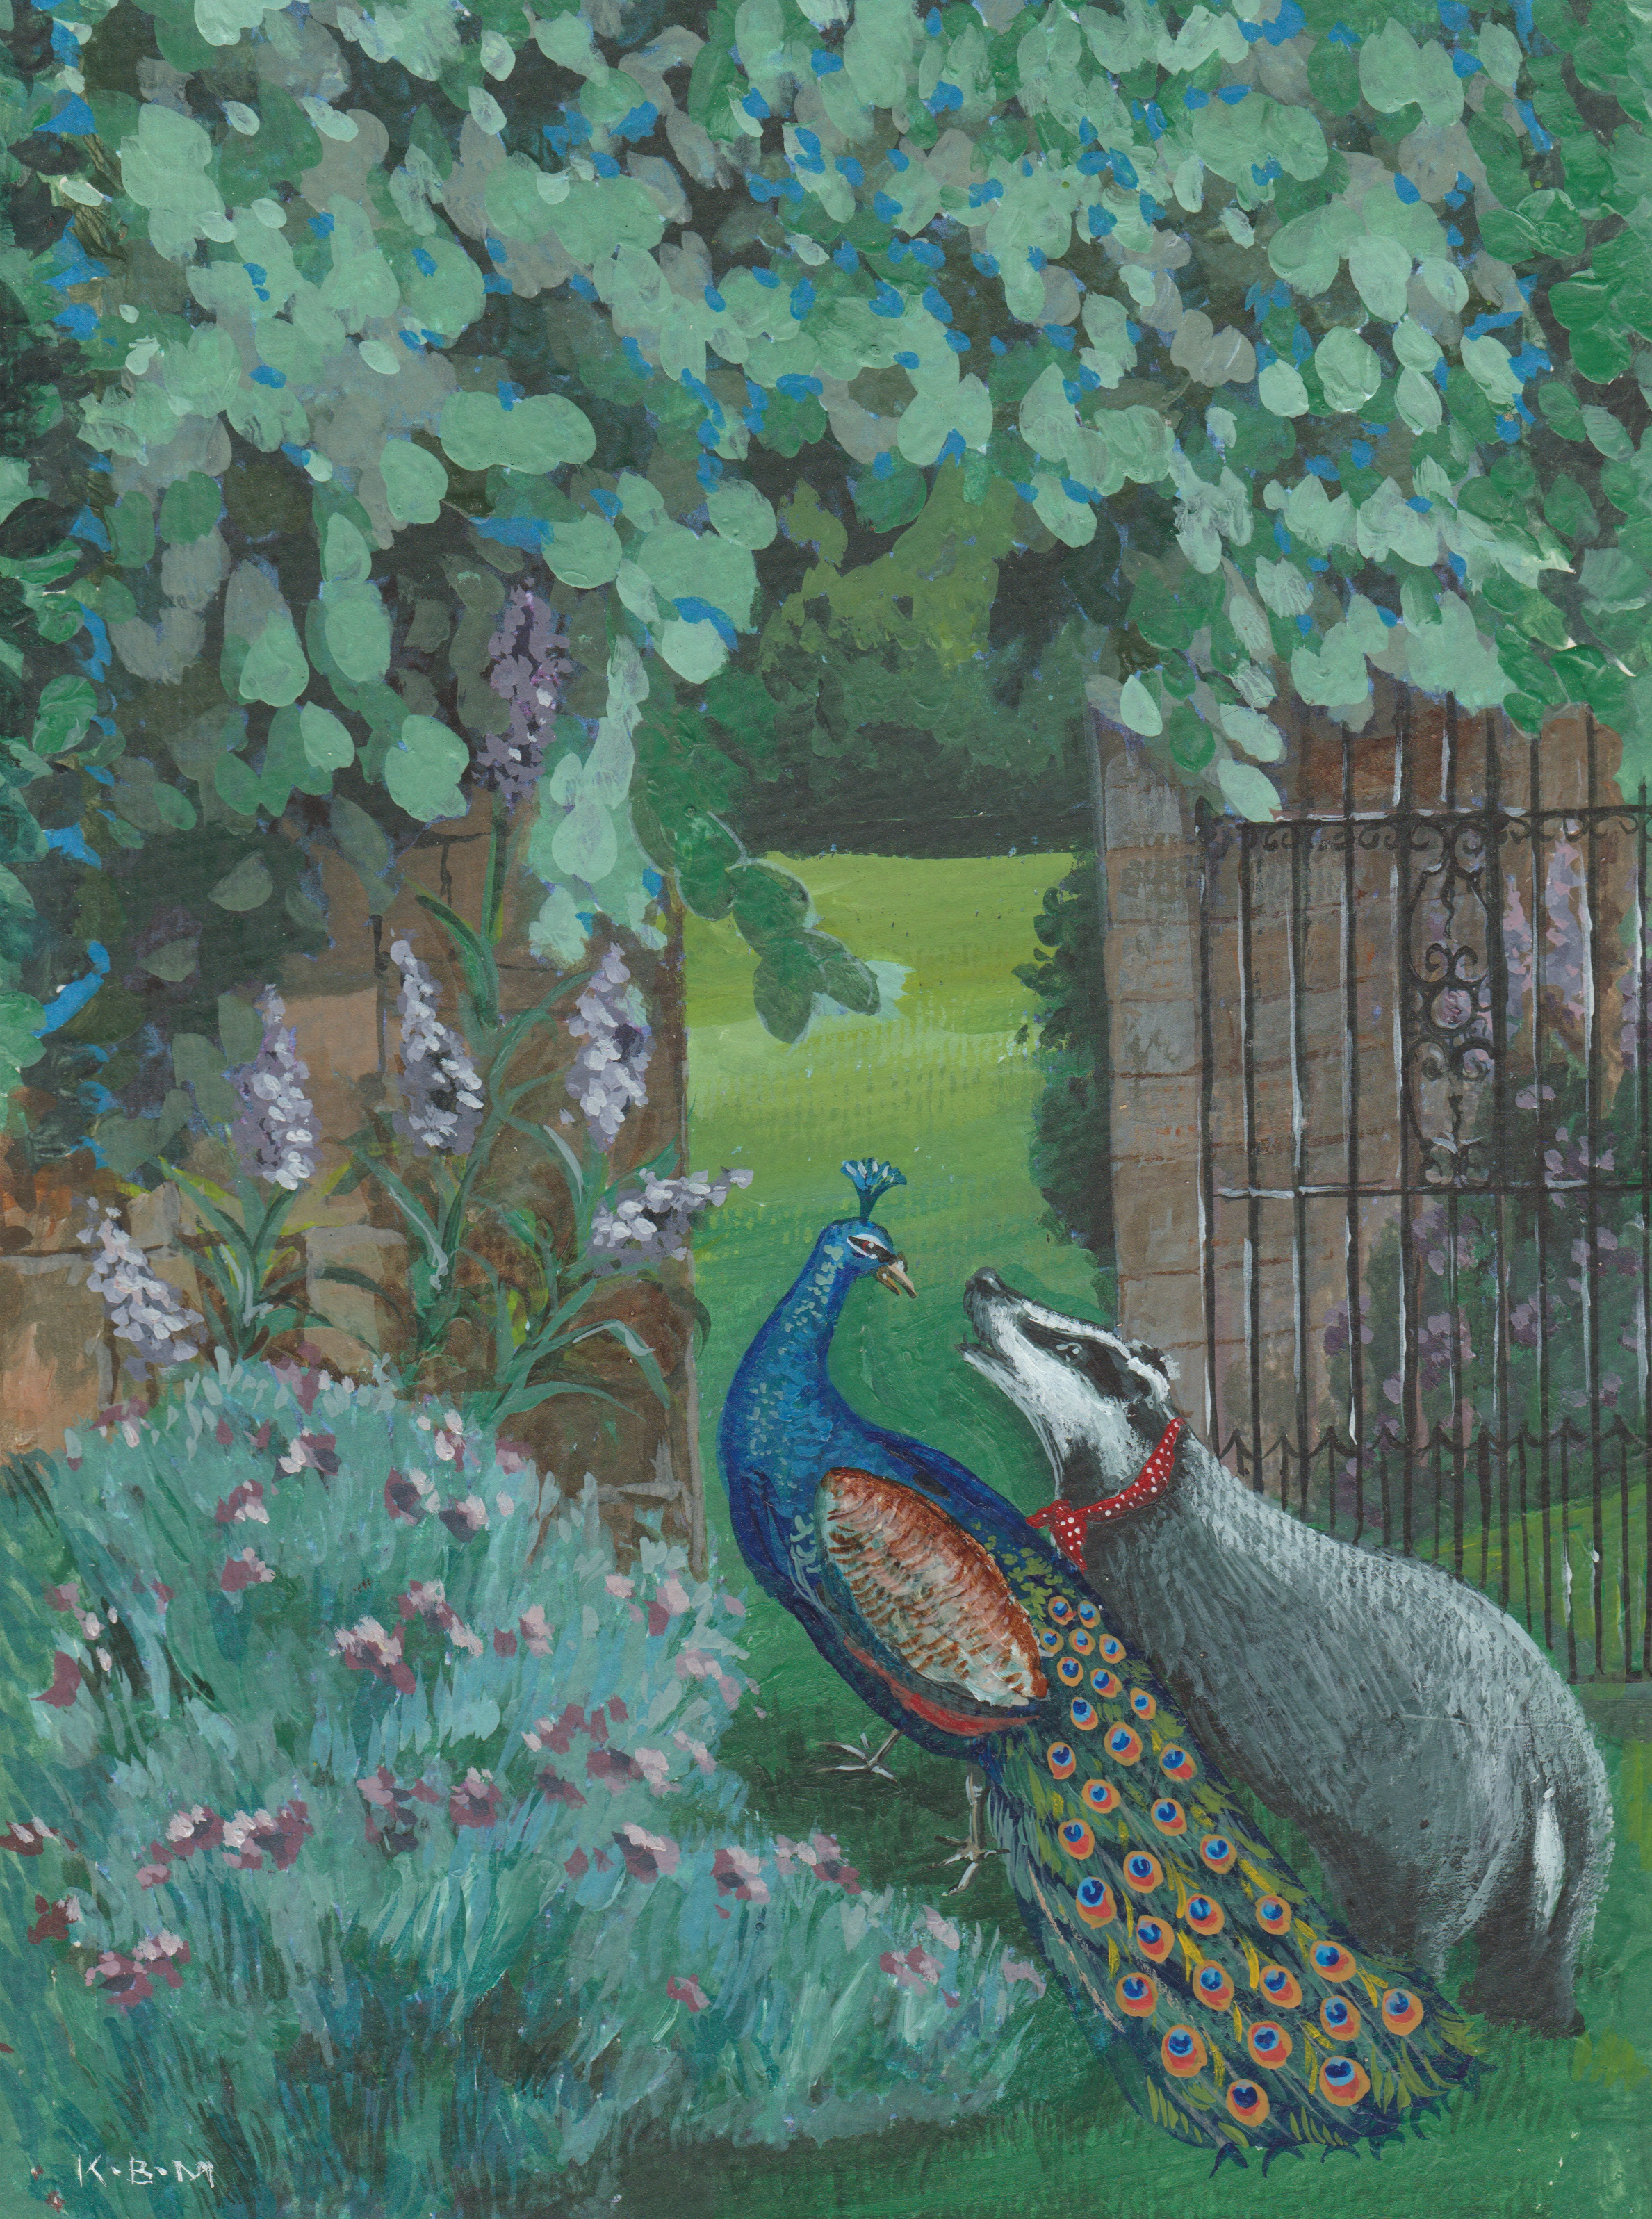 Badger and peacock walking through a garden gate - KBMorgan